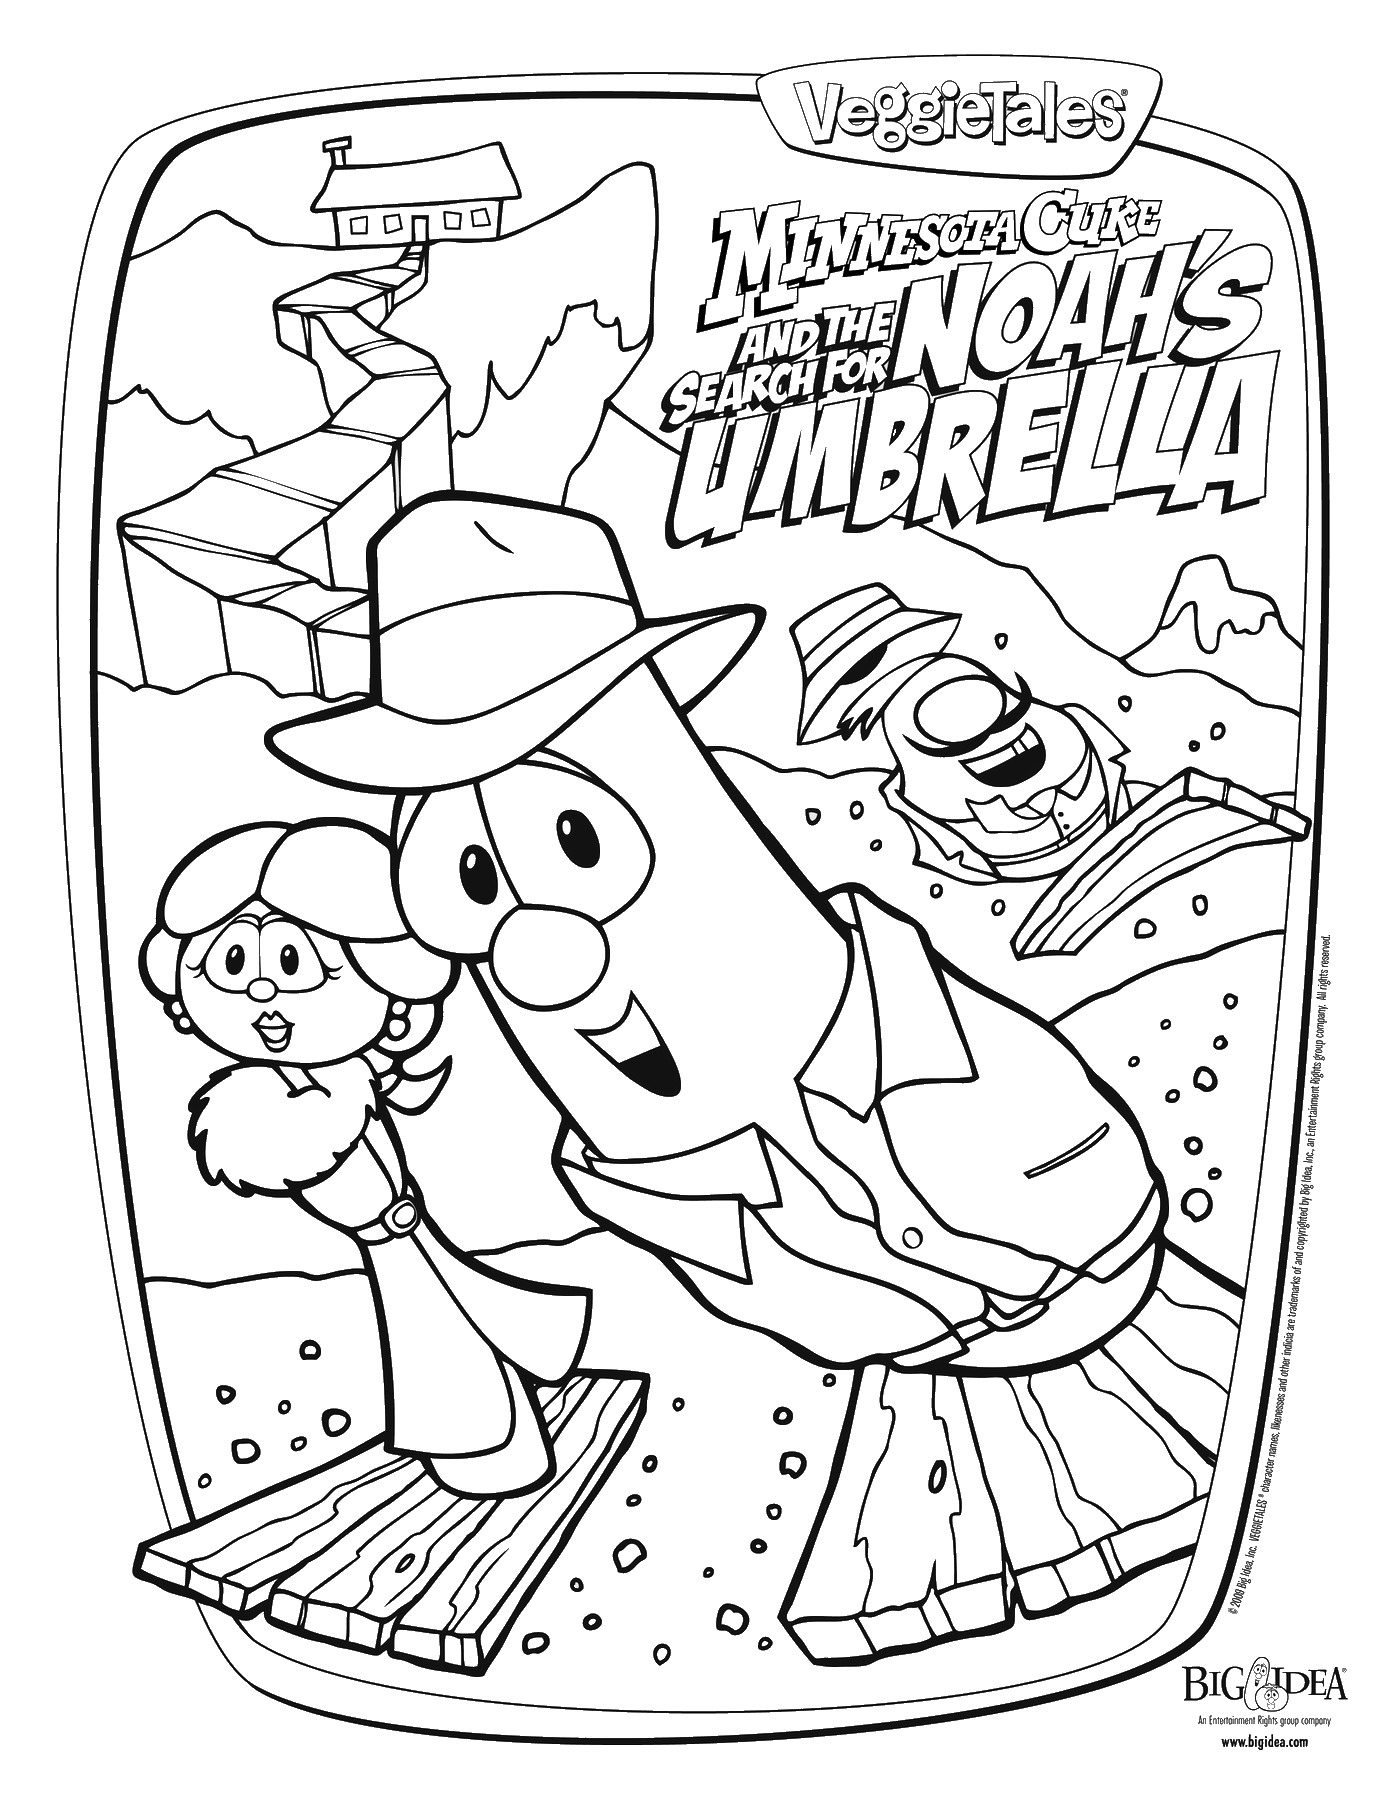 veggie tales pirates coloring pages - photo#9